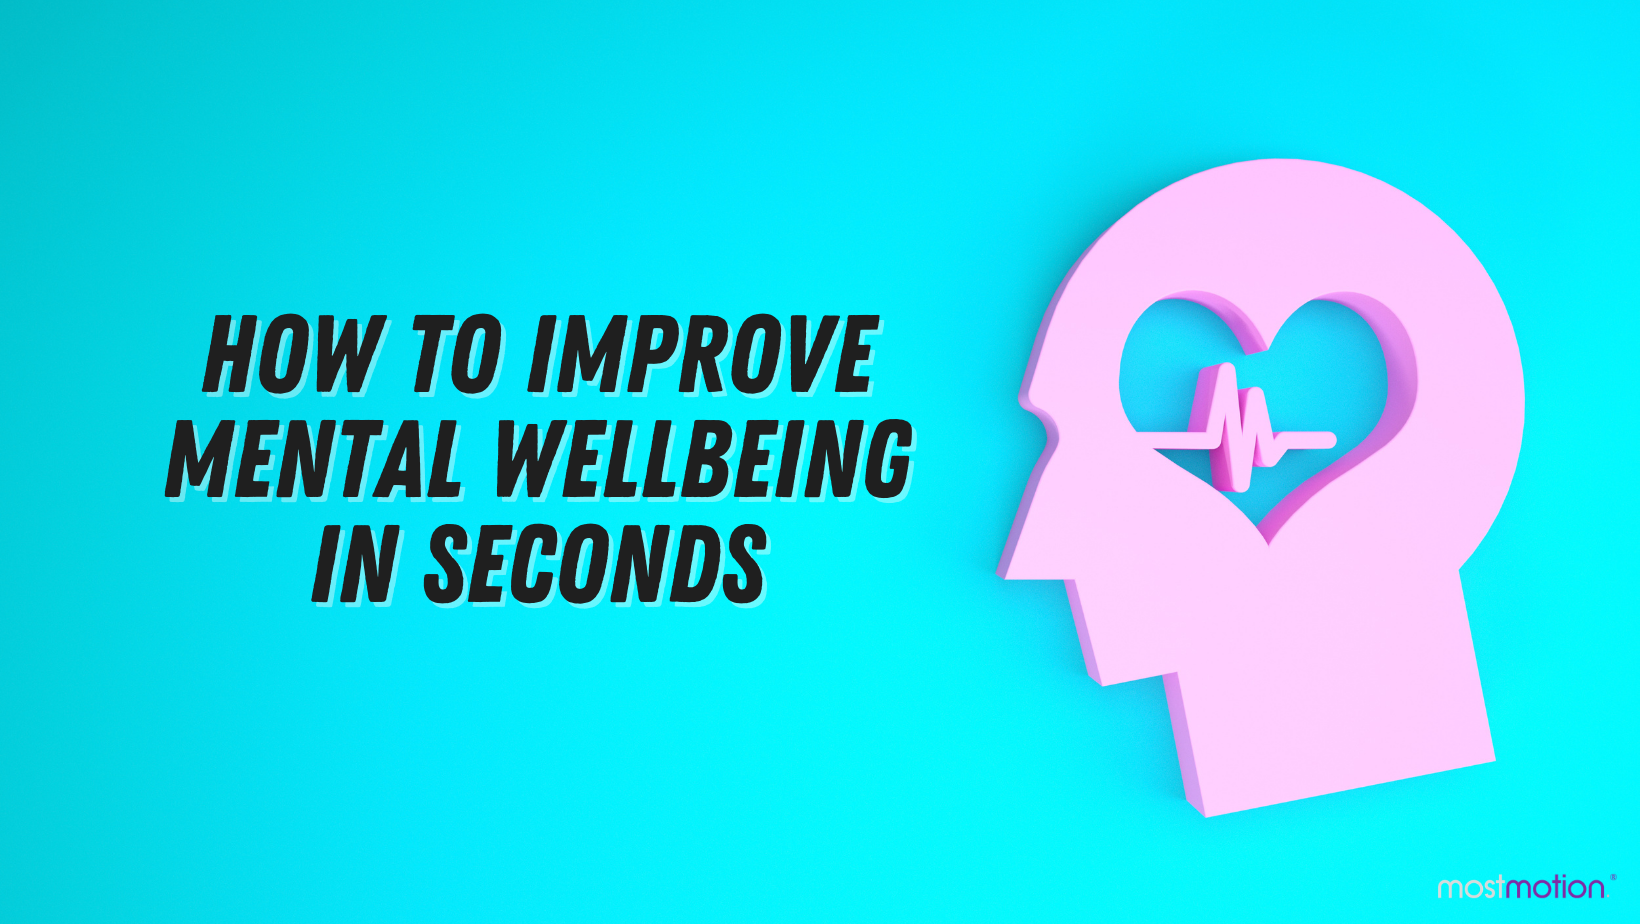 How to Improve Mental Wellbeing in Seconds